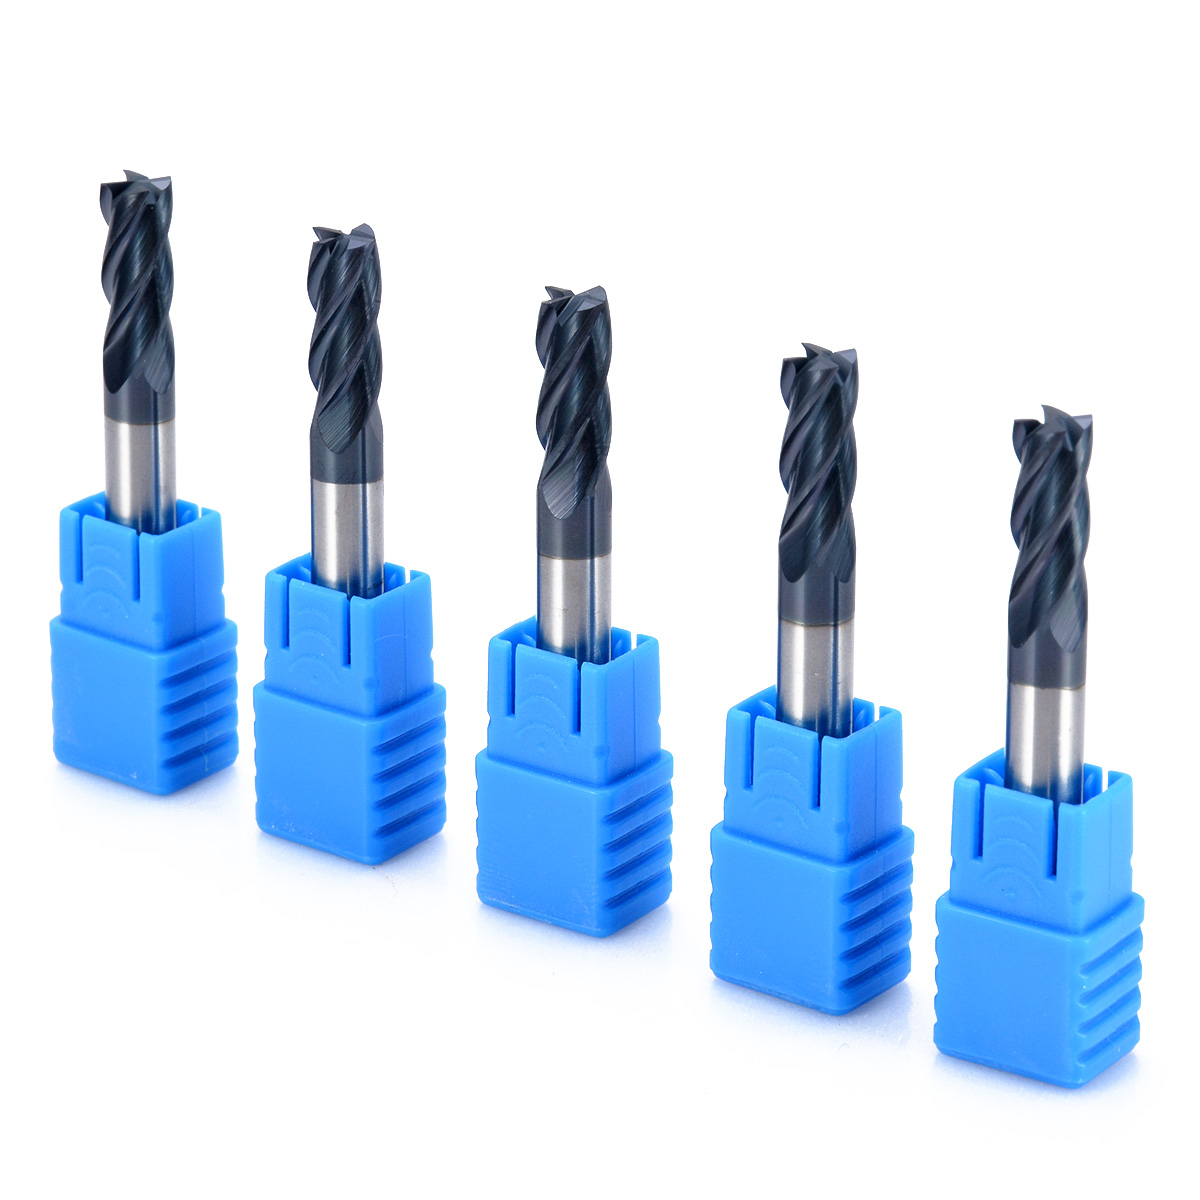 5pcs Tungsten Carbide 4 Flute End Mill High Quality CNC Milling Cutter 6x50mm Mayitr